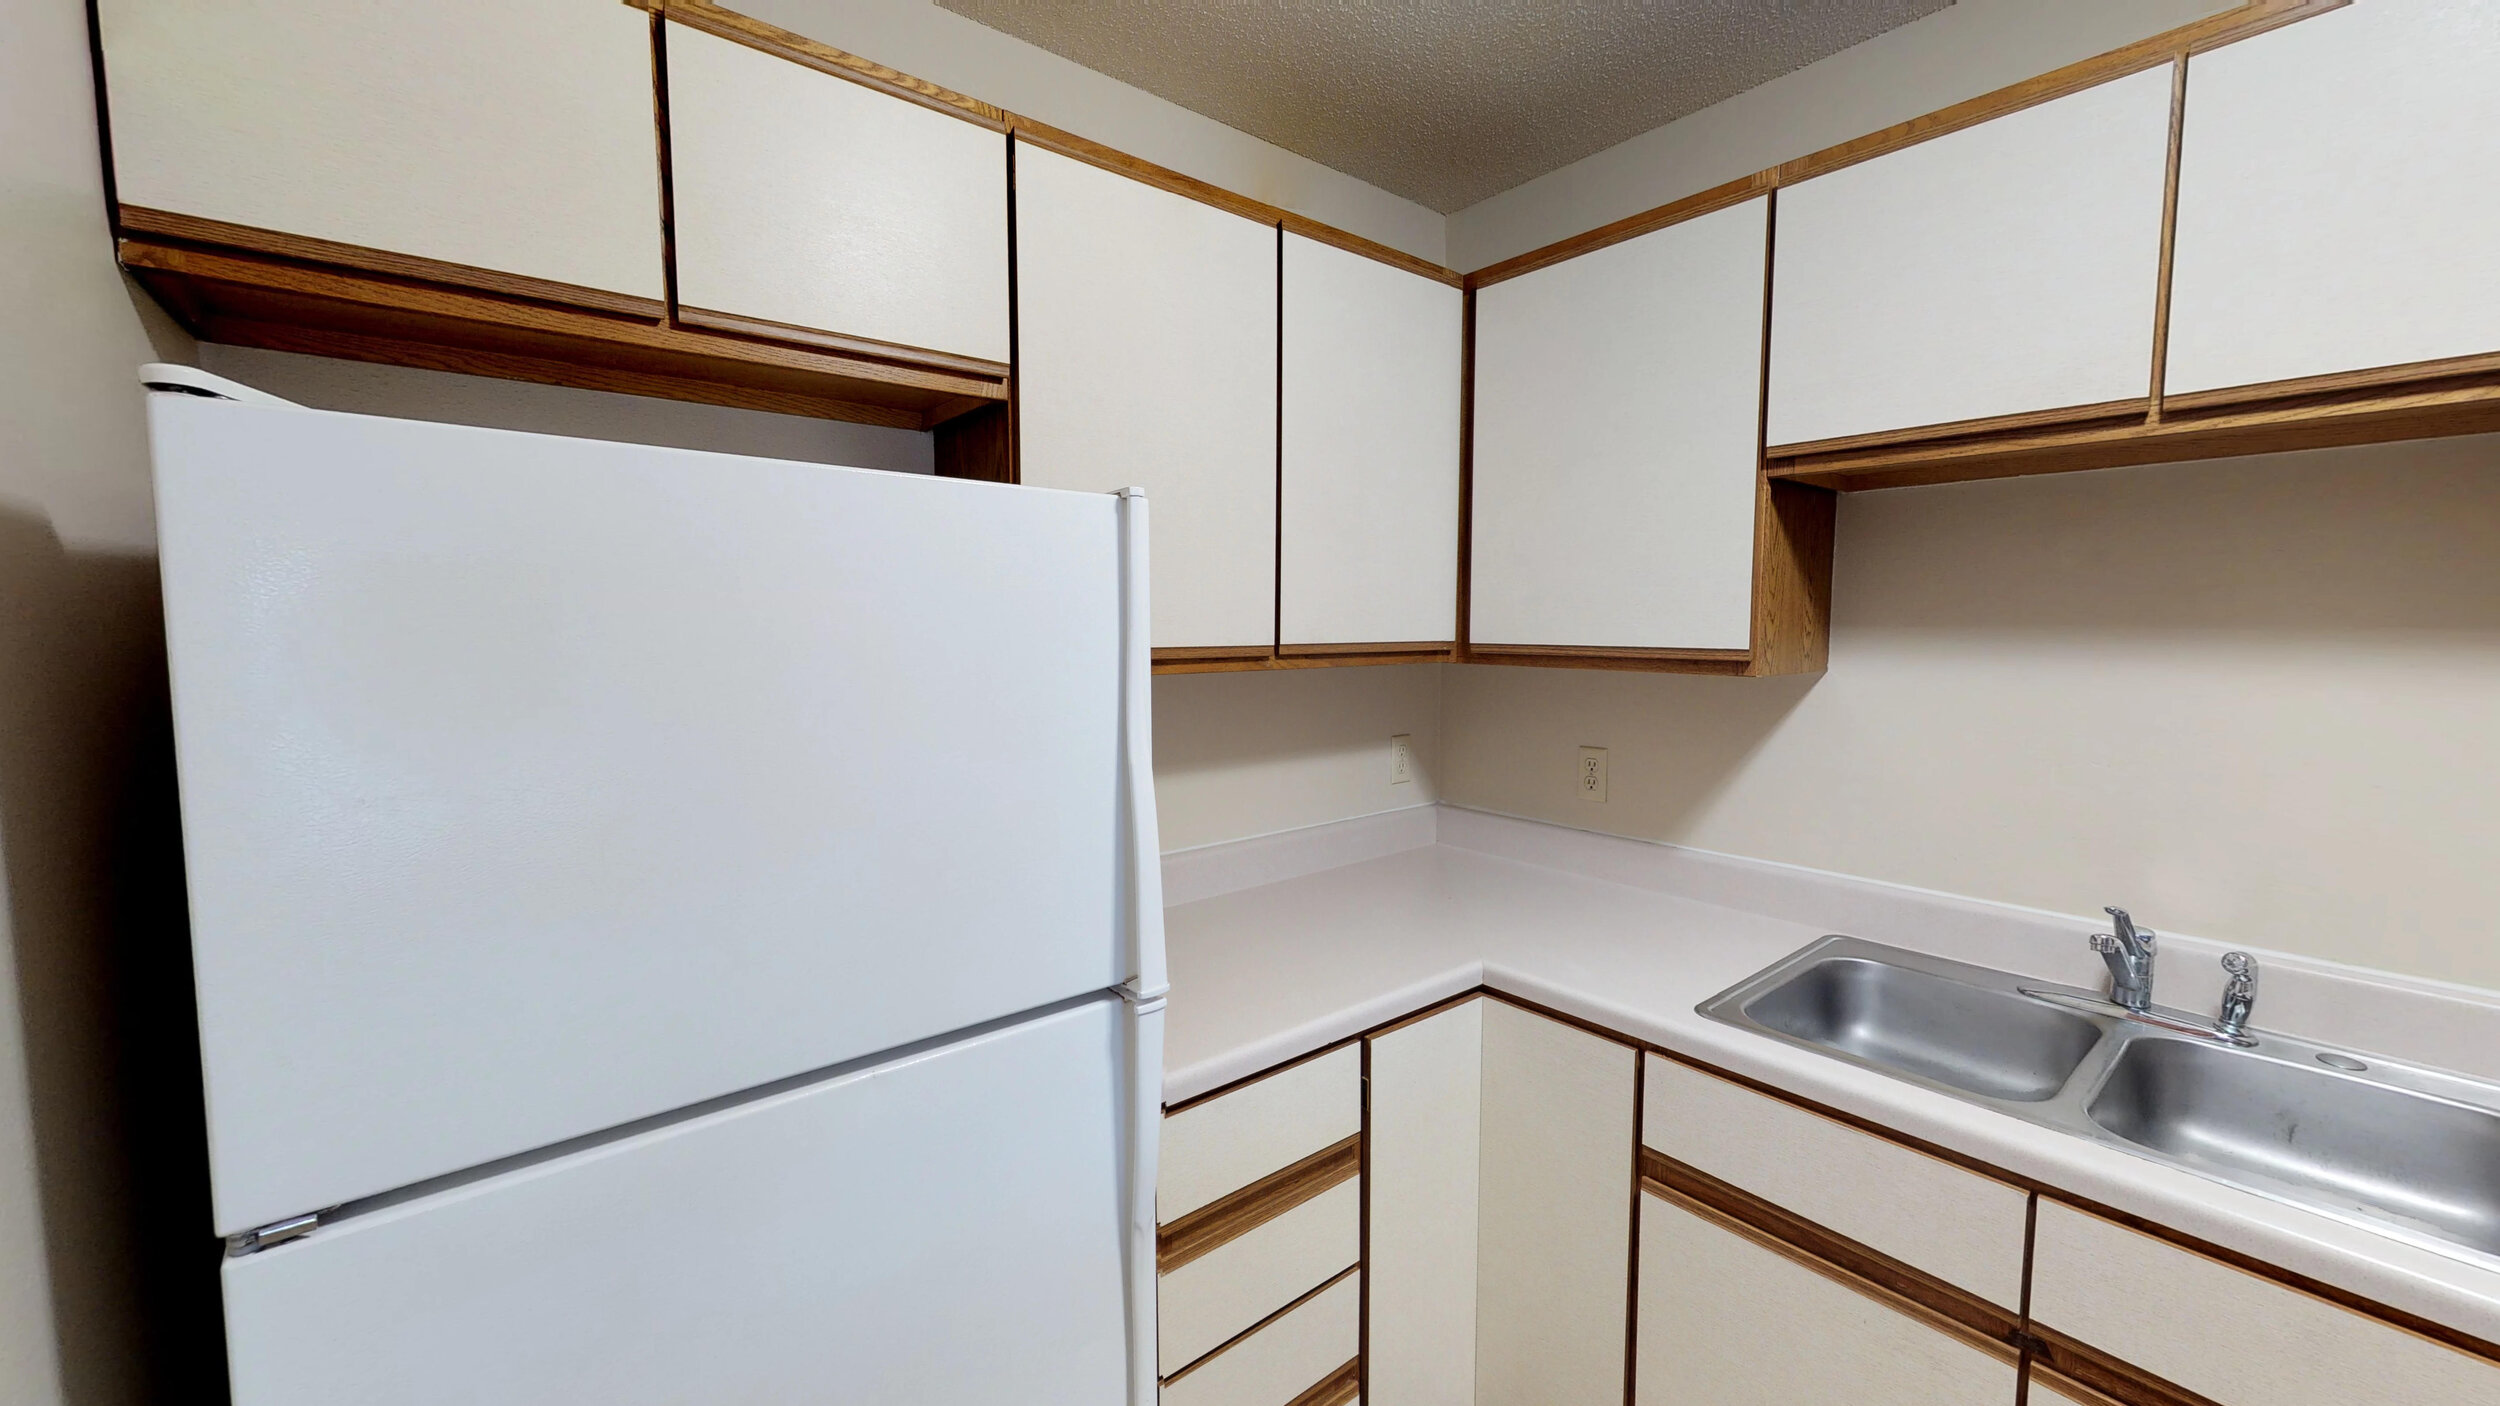 03-Tons of Cabinet & Counter Space.jpg